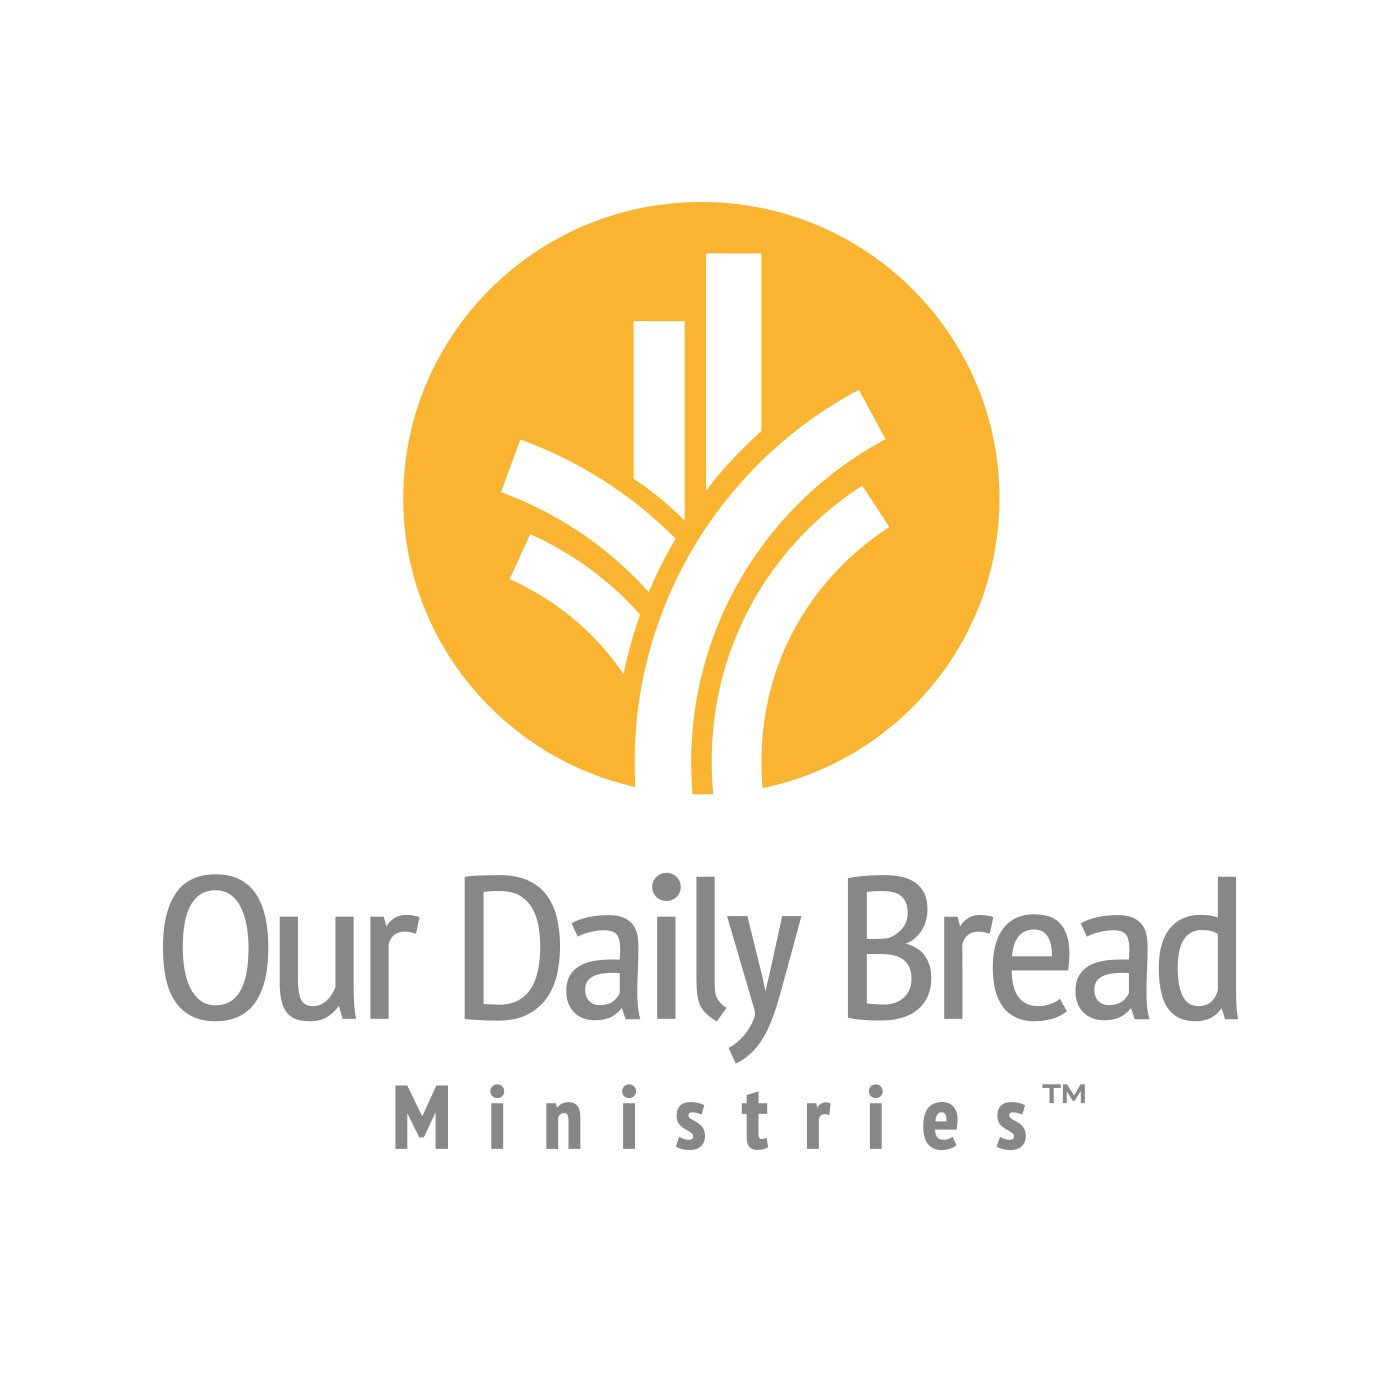 Our Daily Bread 27th November 2020, Our Daily Bread 27th November 2020 Devotional – Facing The Battle, Latest Nigeria News, Daily Devotionals & Celebrity Gossips - Chidispalace